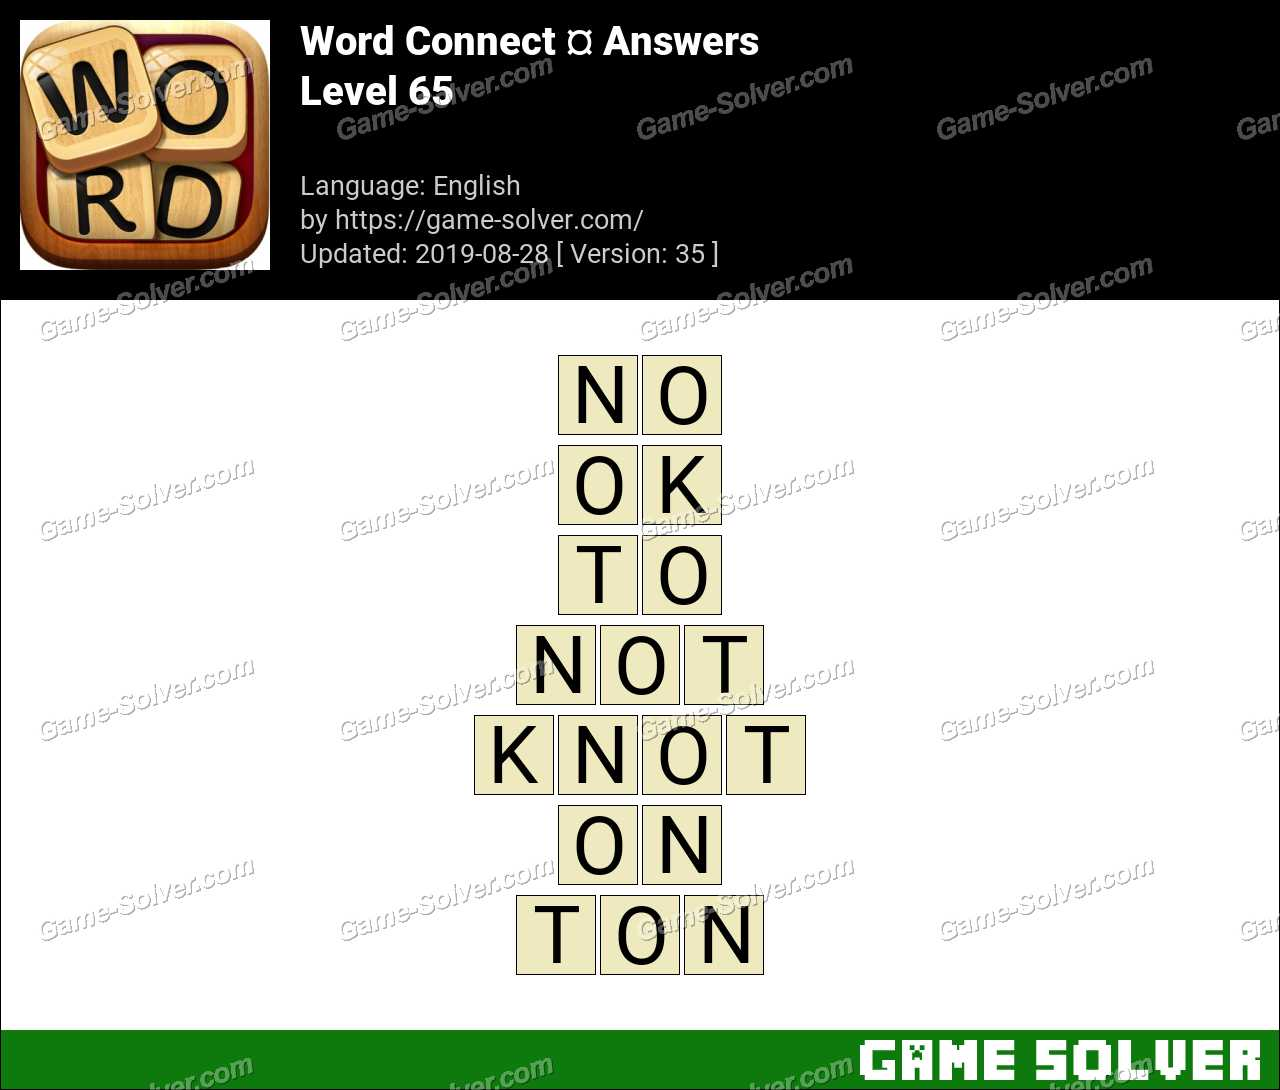 Word Connect Level 65 Answers